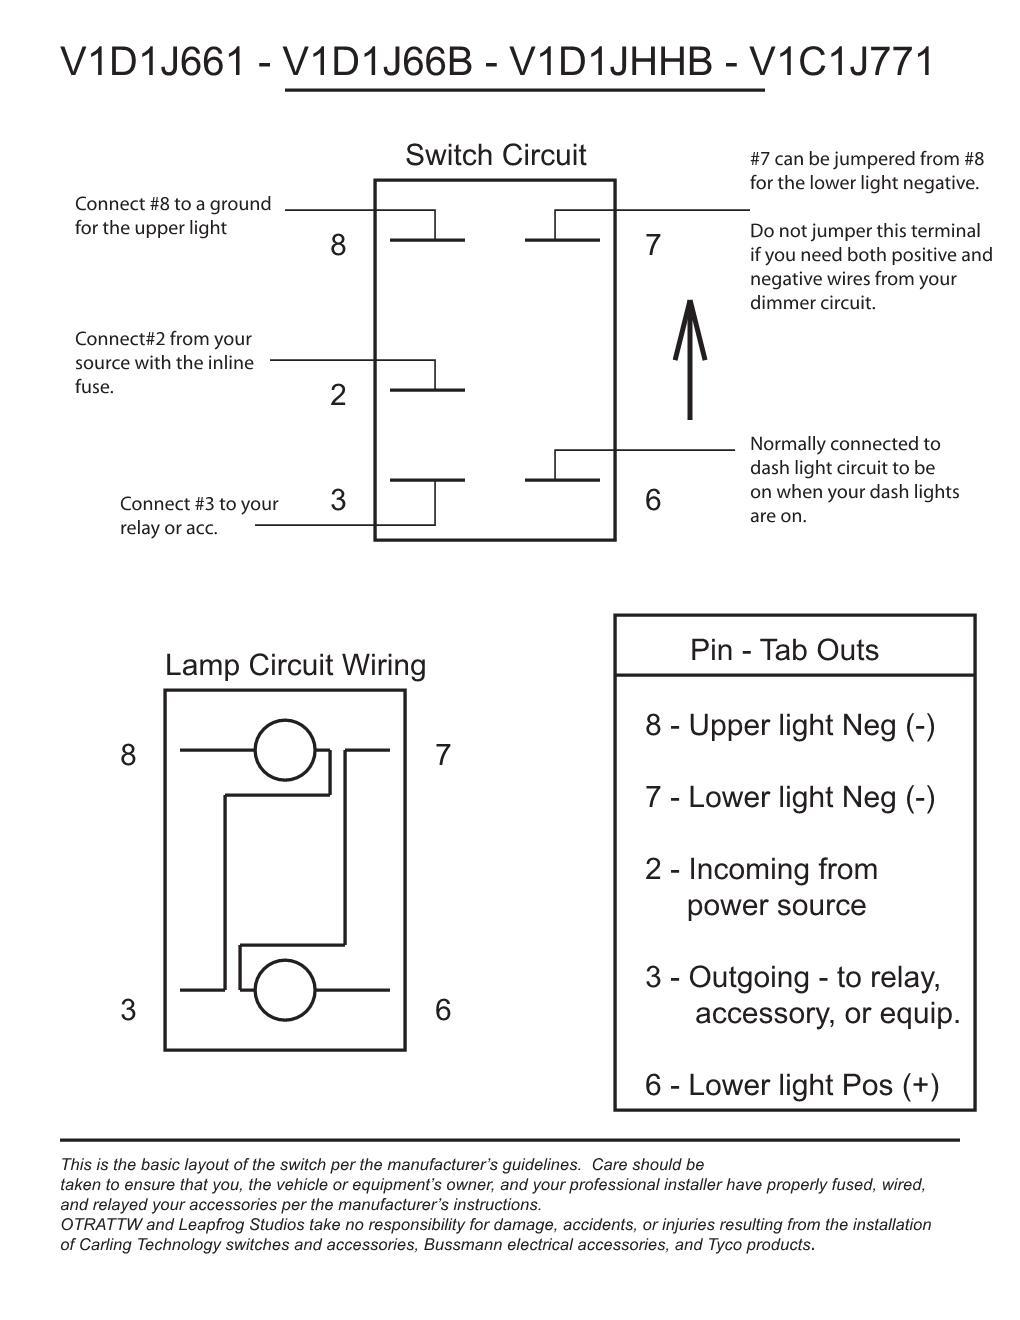 Otrattw Switch Wiring Diagram Library Wire Relay 3 Kragen 7 In Hid Lights Attn Diagrams Boat Rocker Image May Have Been Reduced Size Click To View Fullscreen